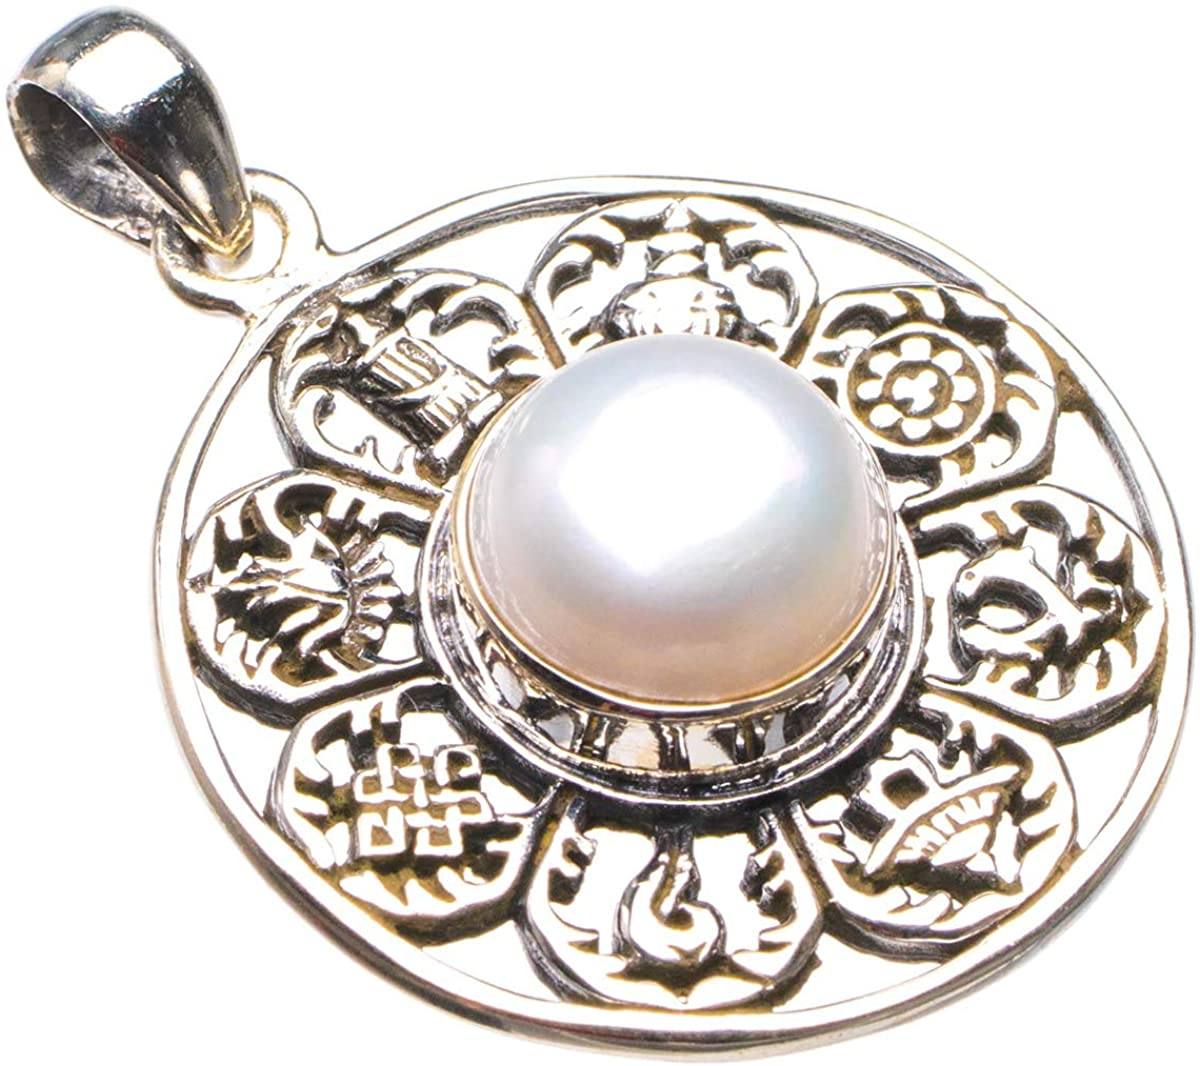 Natural River Pearl Handmade 925 Sterling Silver Pendant 1.5 D1716